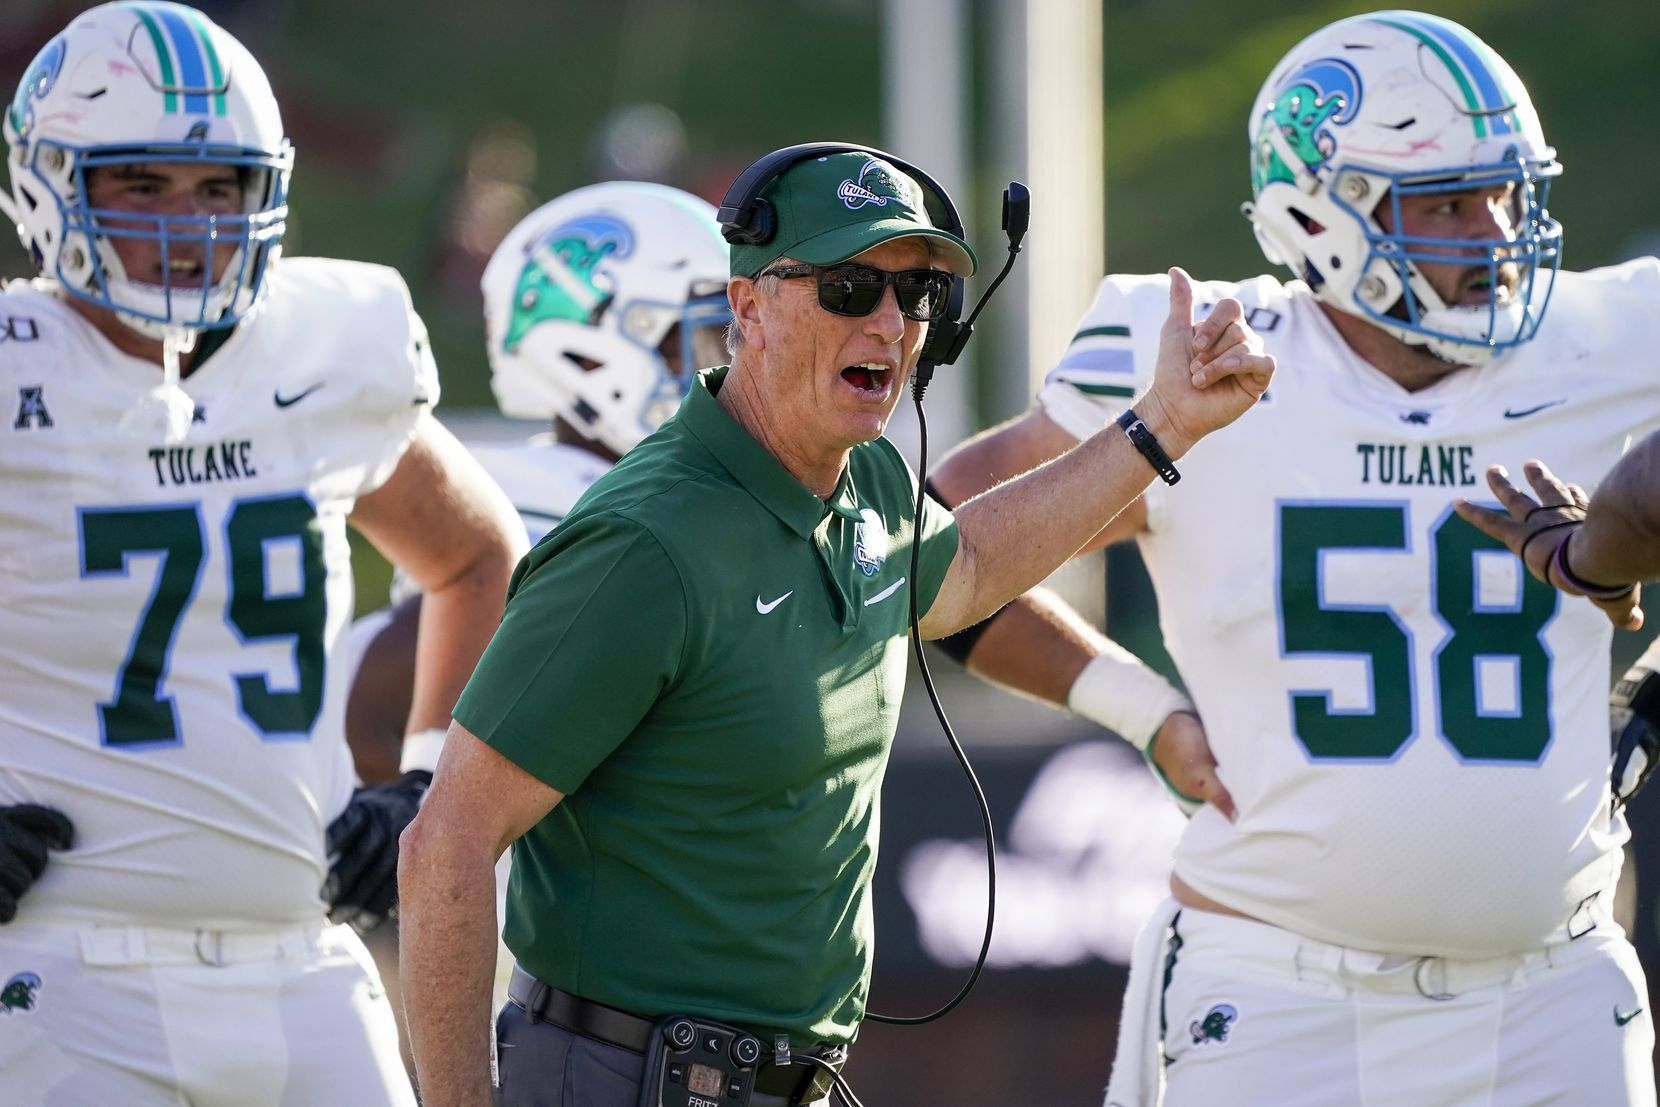 Tulane head coach Willie Fritz yells toward an official during the first half of an NCAA football game against SMU at Ford Stadium on Saturday, Nov. 30, 2019, in Dallas.